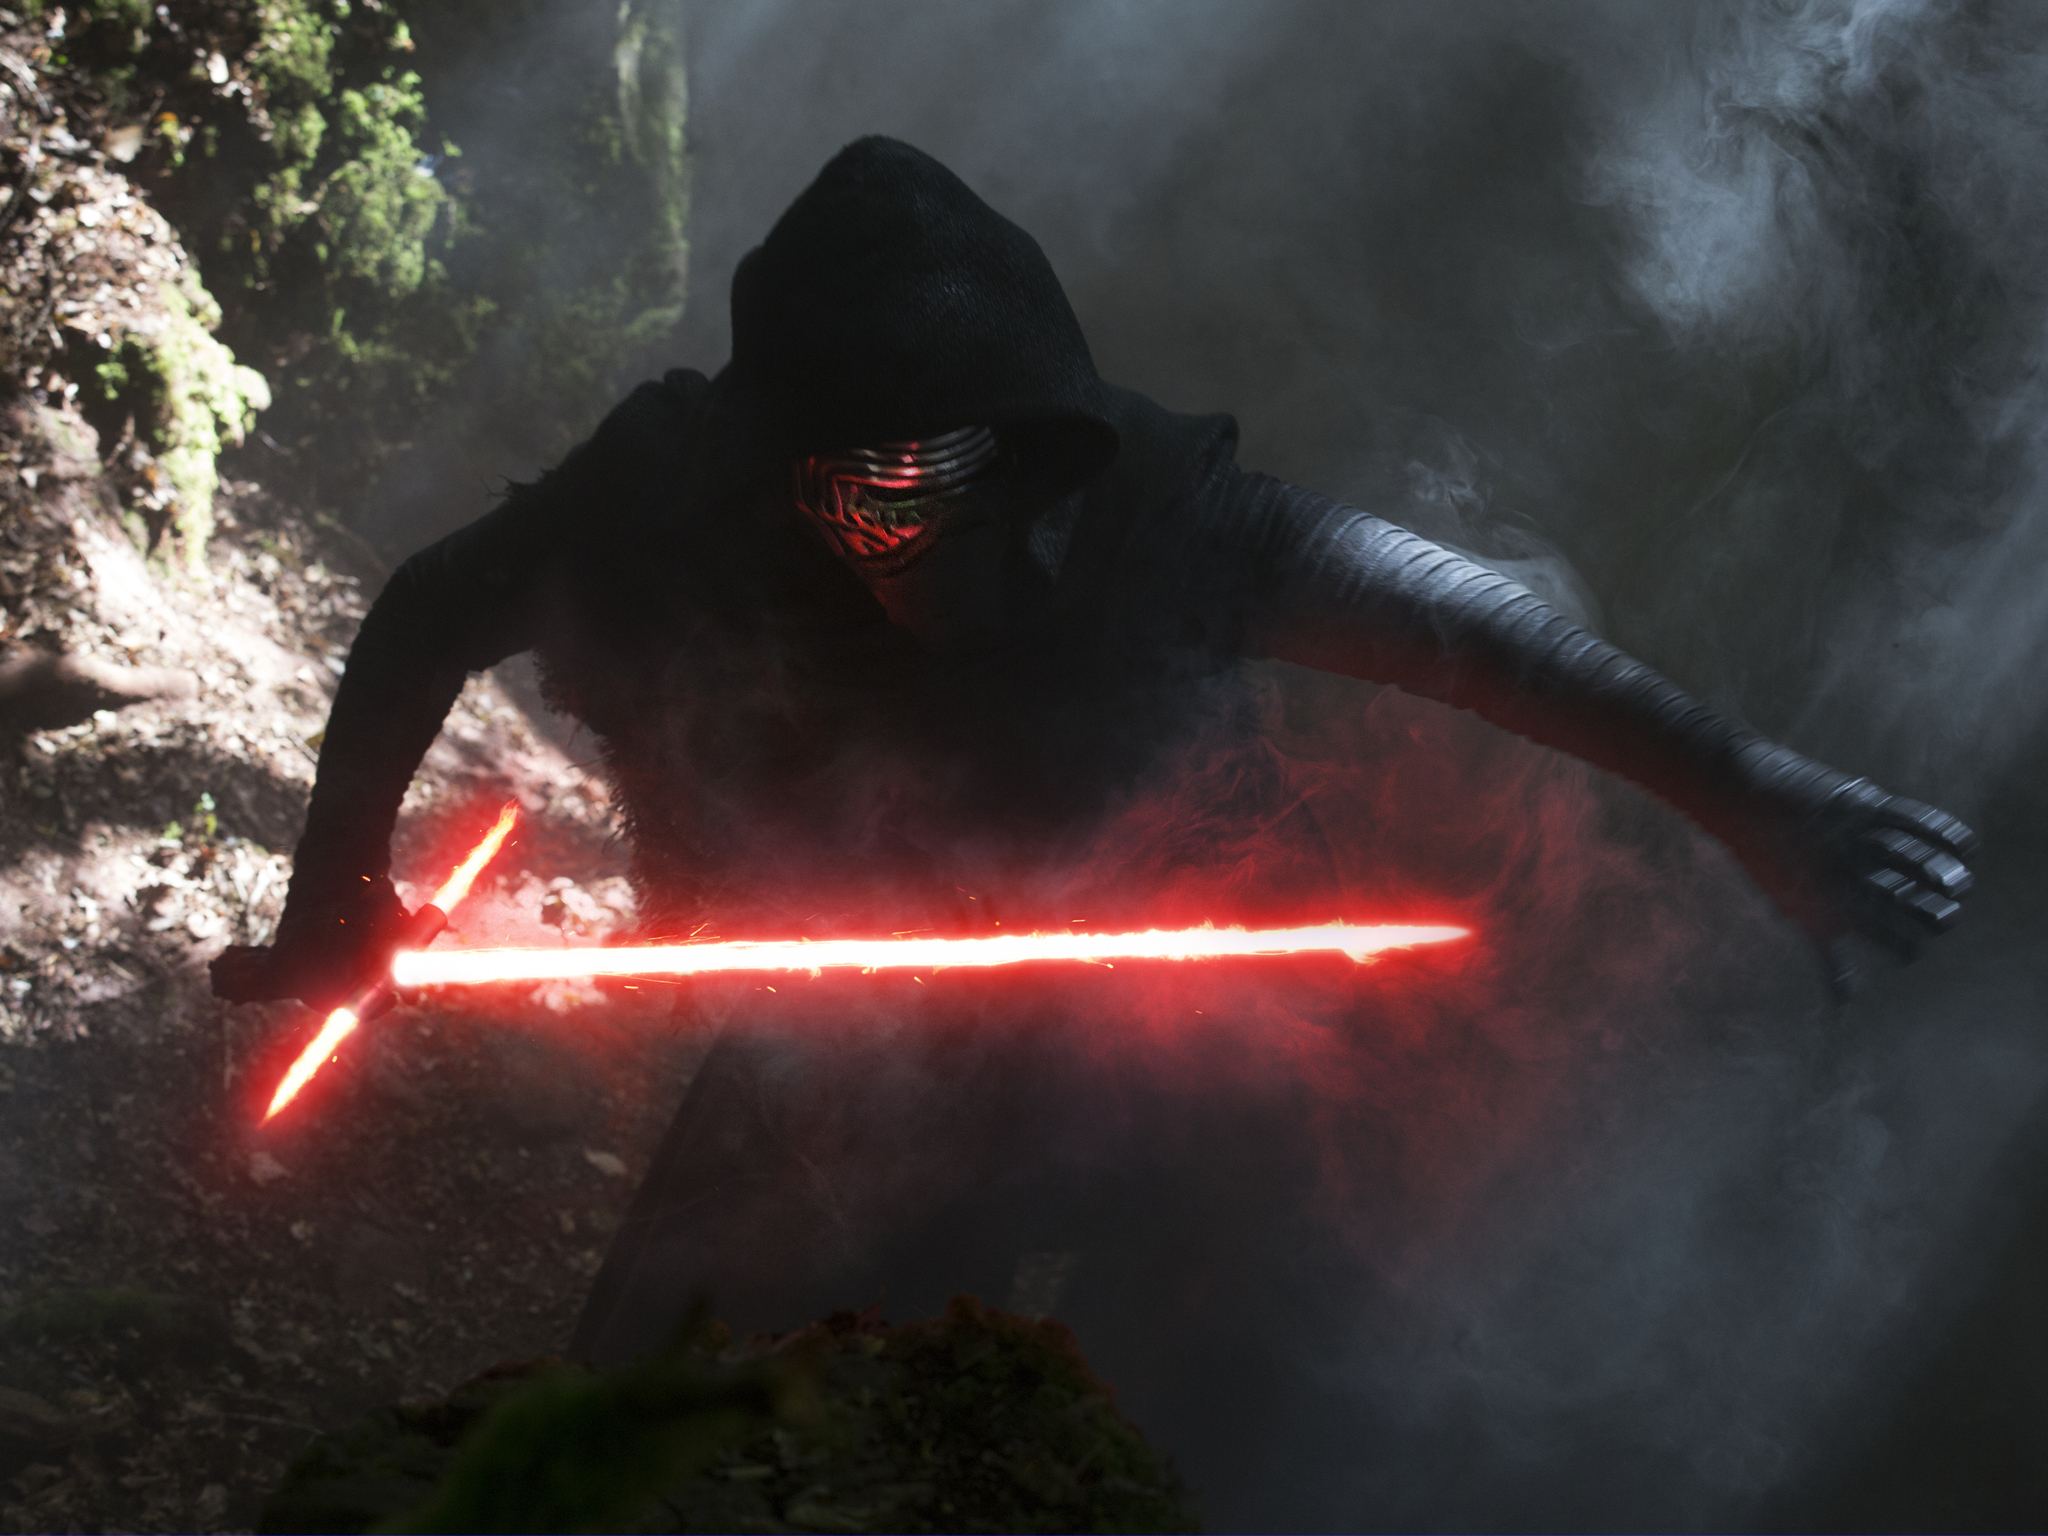 Kylo Ren in Star Wars